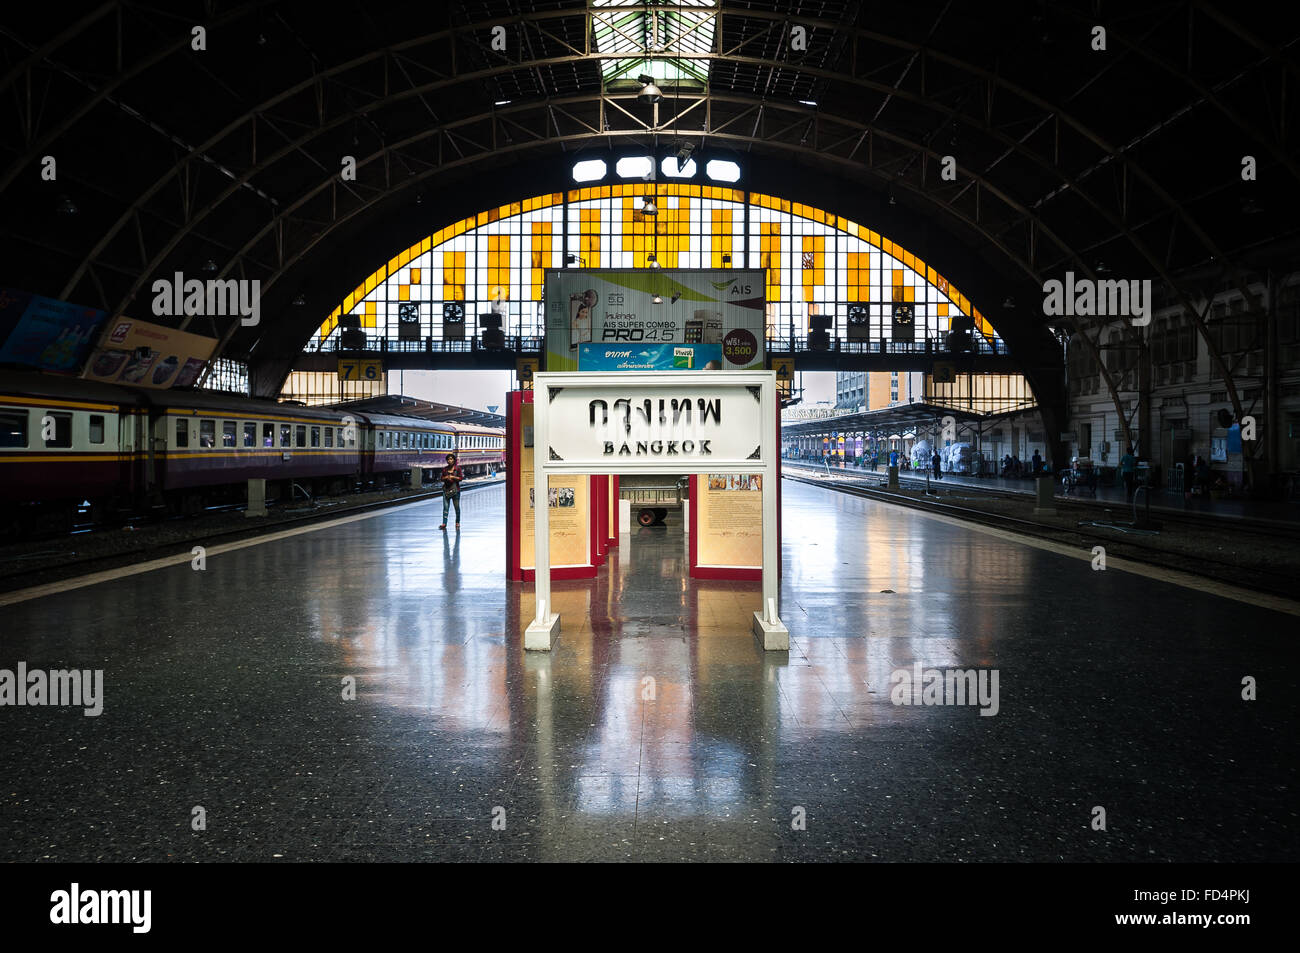 Destination sign on the platform of Hua Lamphong railway station, Bangkok, Thailand - Stock Image